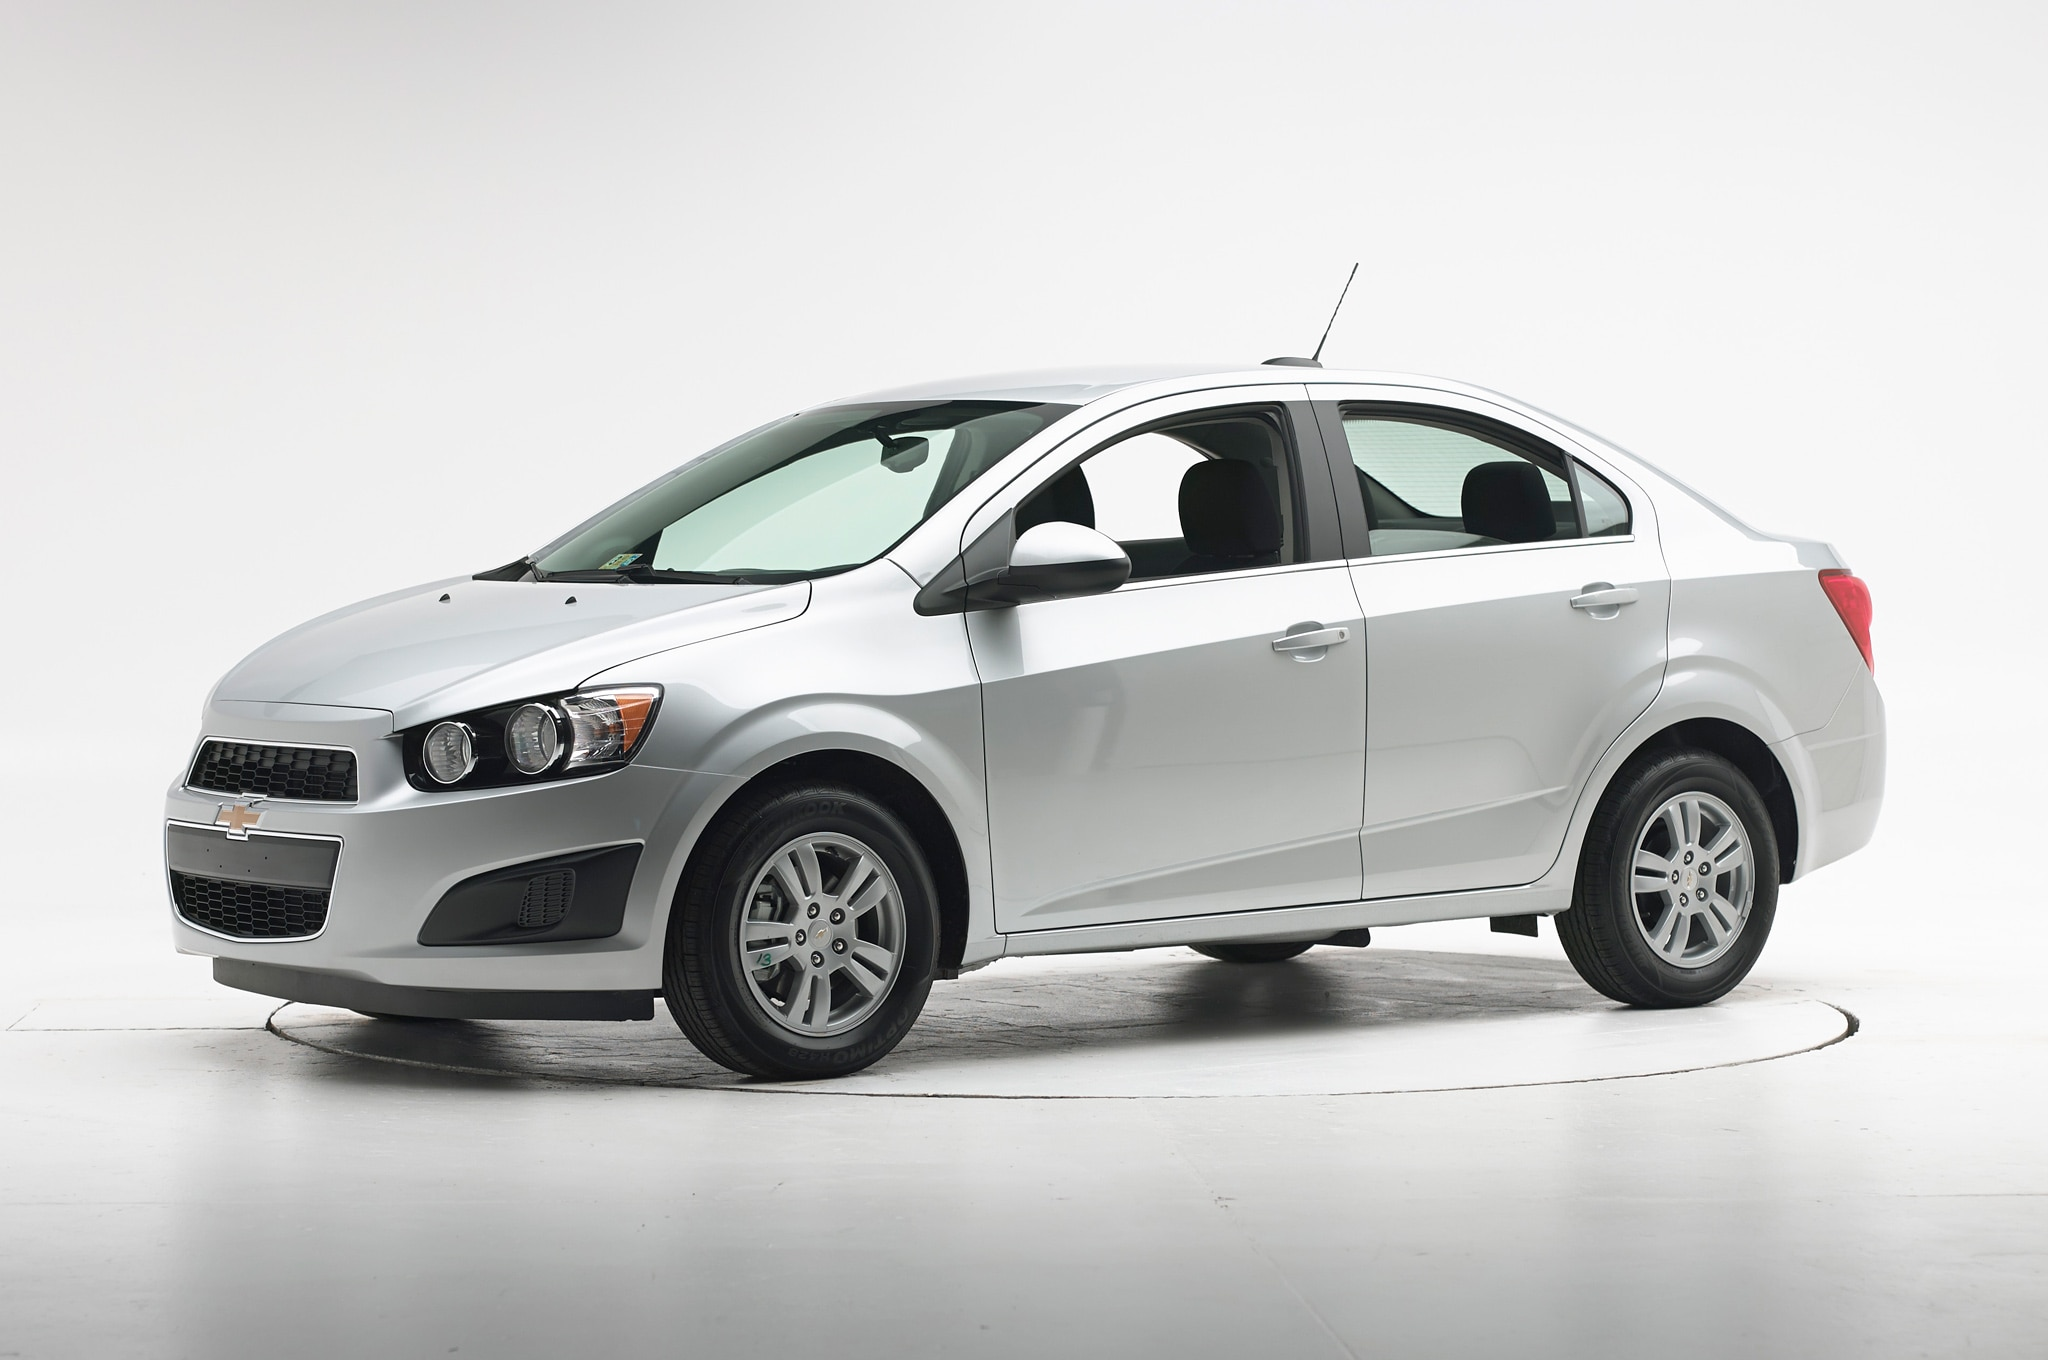 2015 chevrolet sonic receives iihs top safety pick. Black Bedroom Furniture Sets. Home Design Ideas